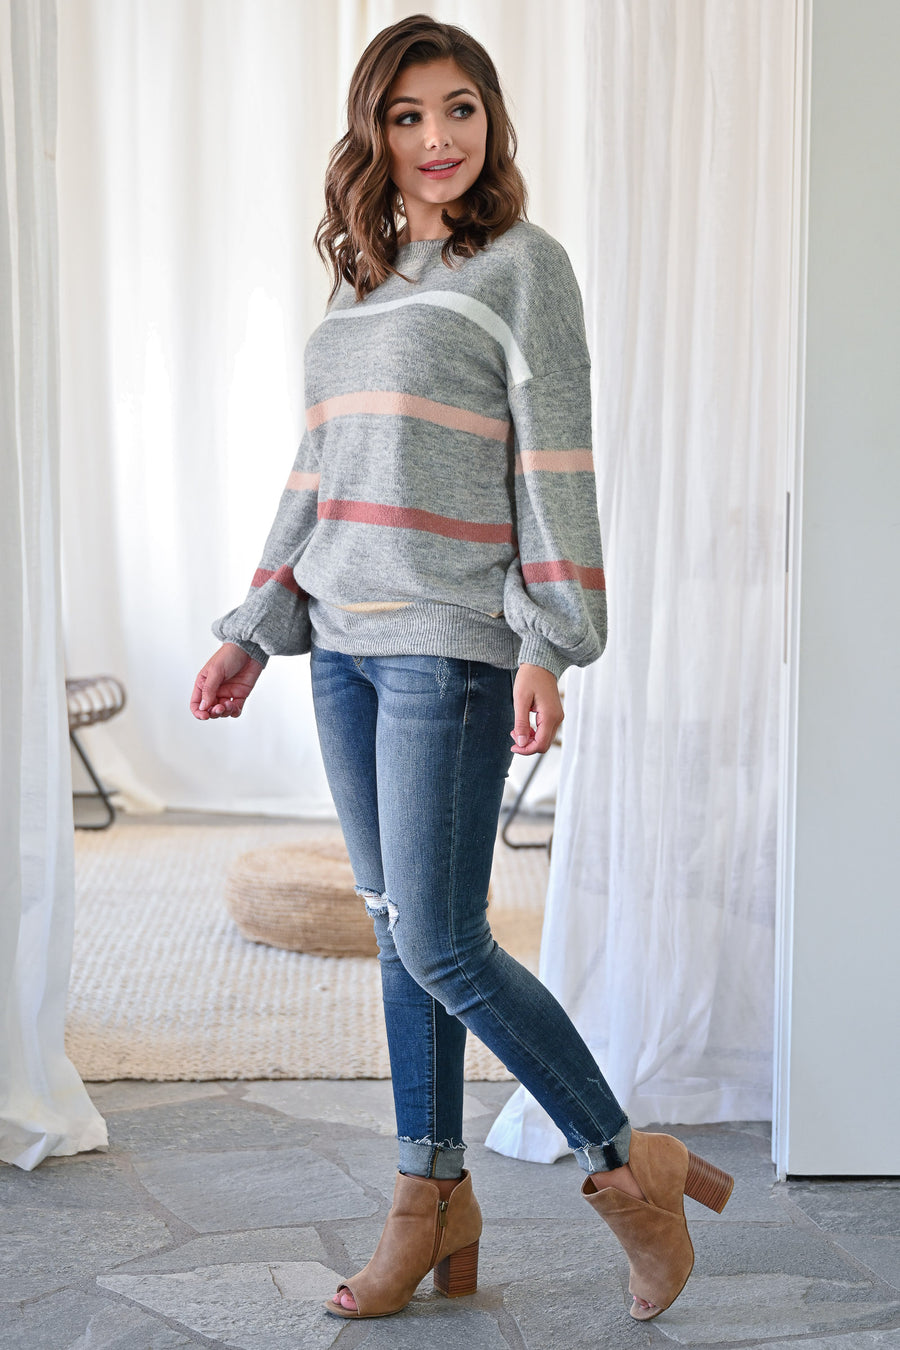 Subtle Hints Striped Sweater - Heather Grey womens trendy long sleeve synched bottom striped cozy sweater closet candy front; Model: Hannah Ann S